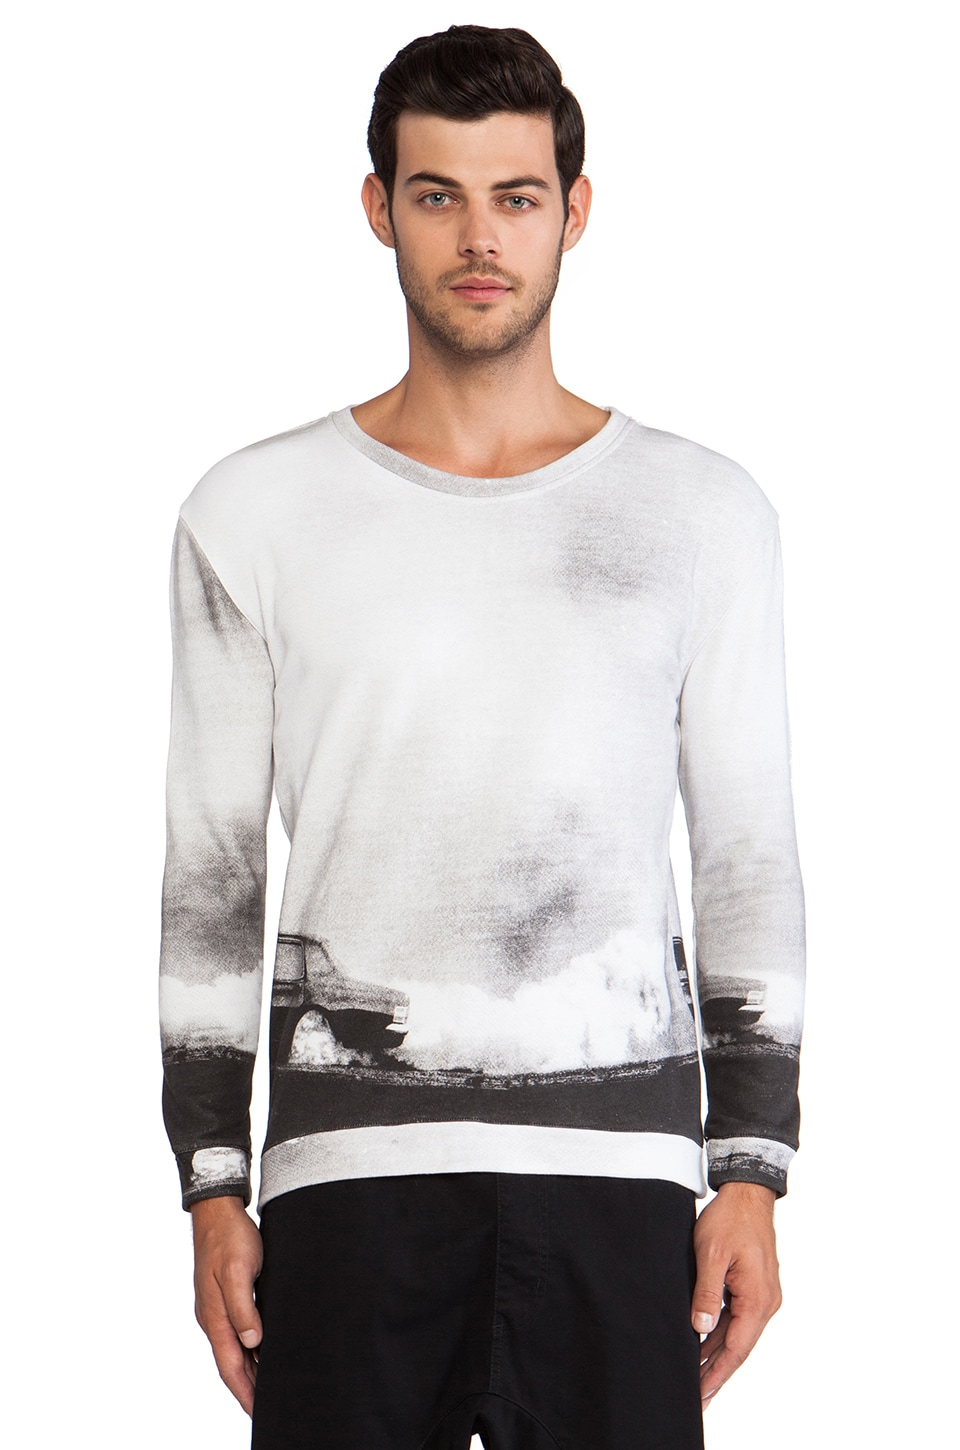 INSTED WE SMILE Black and White Burnout Sweater in Black/White